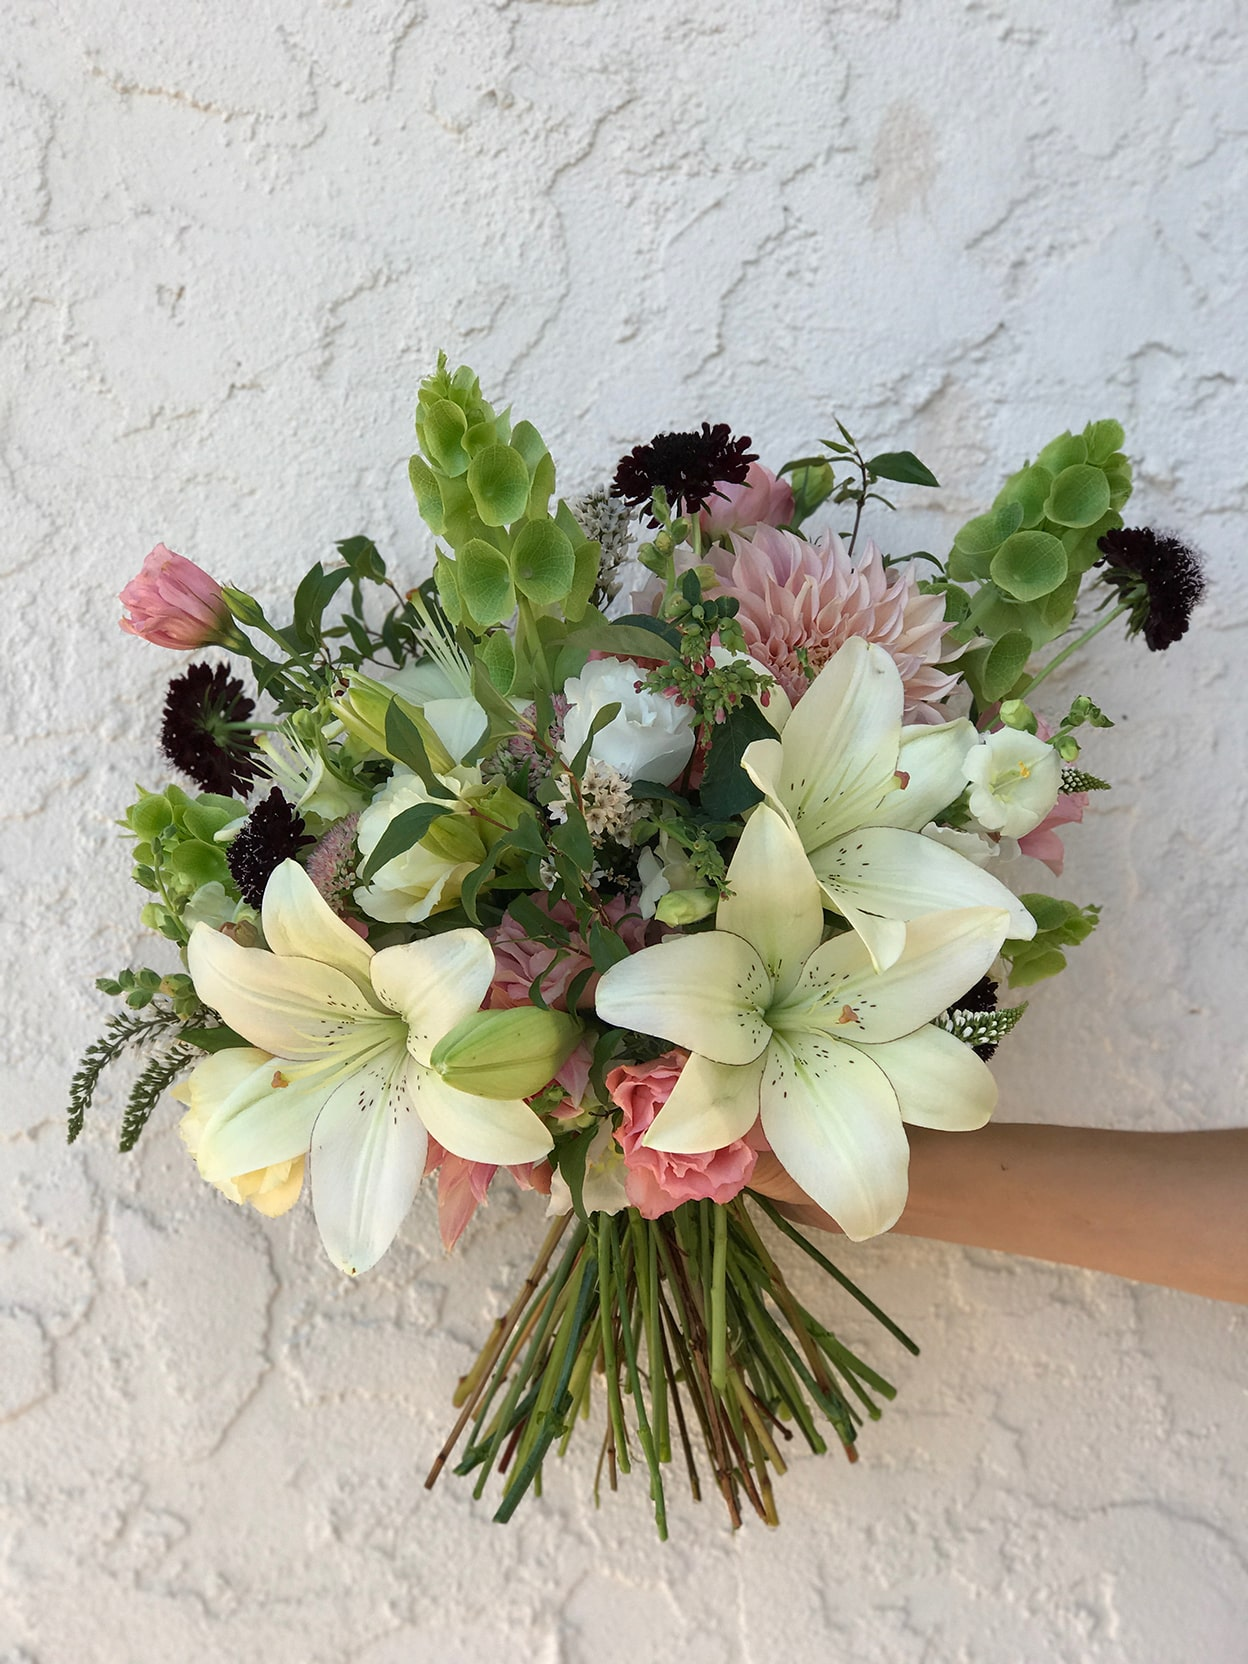 How to know if DIY wedding flowers are for you